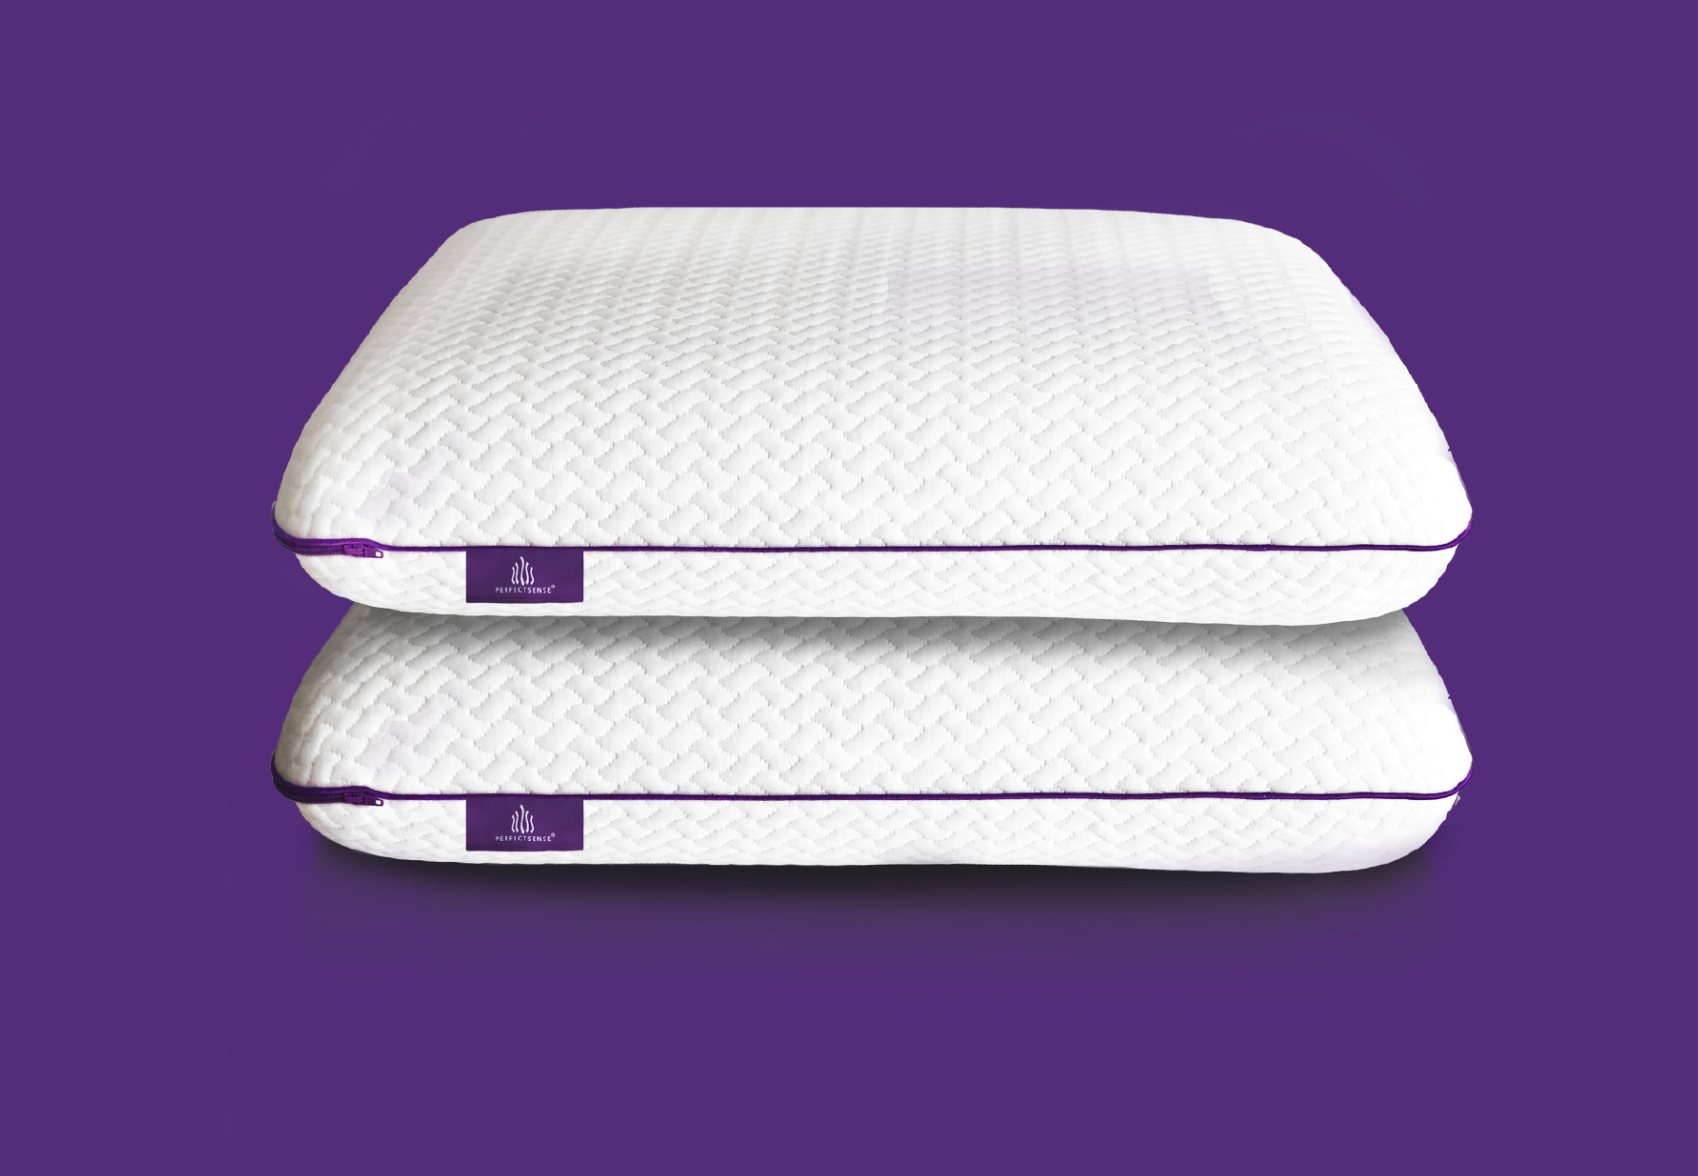 2 queen size memory foam pillows stacked atop each other against purple background